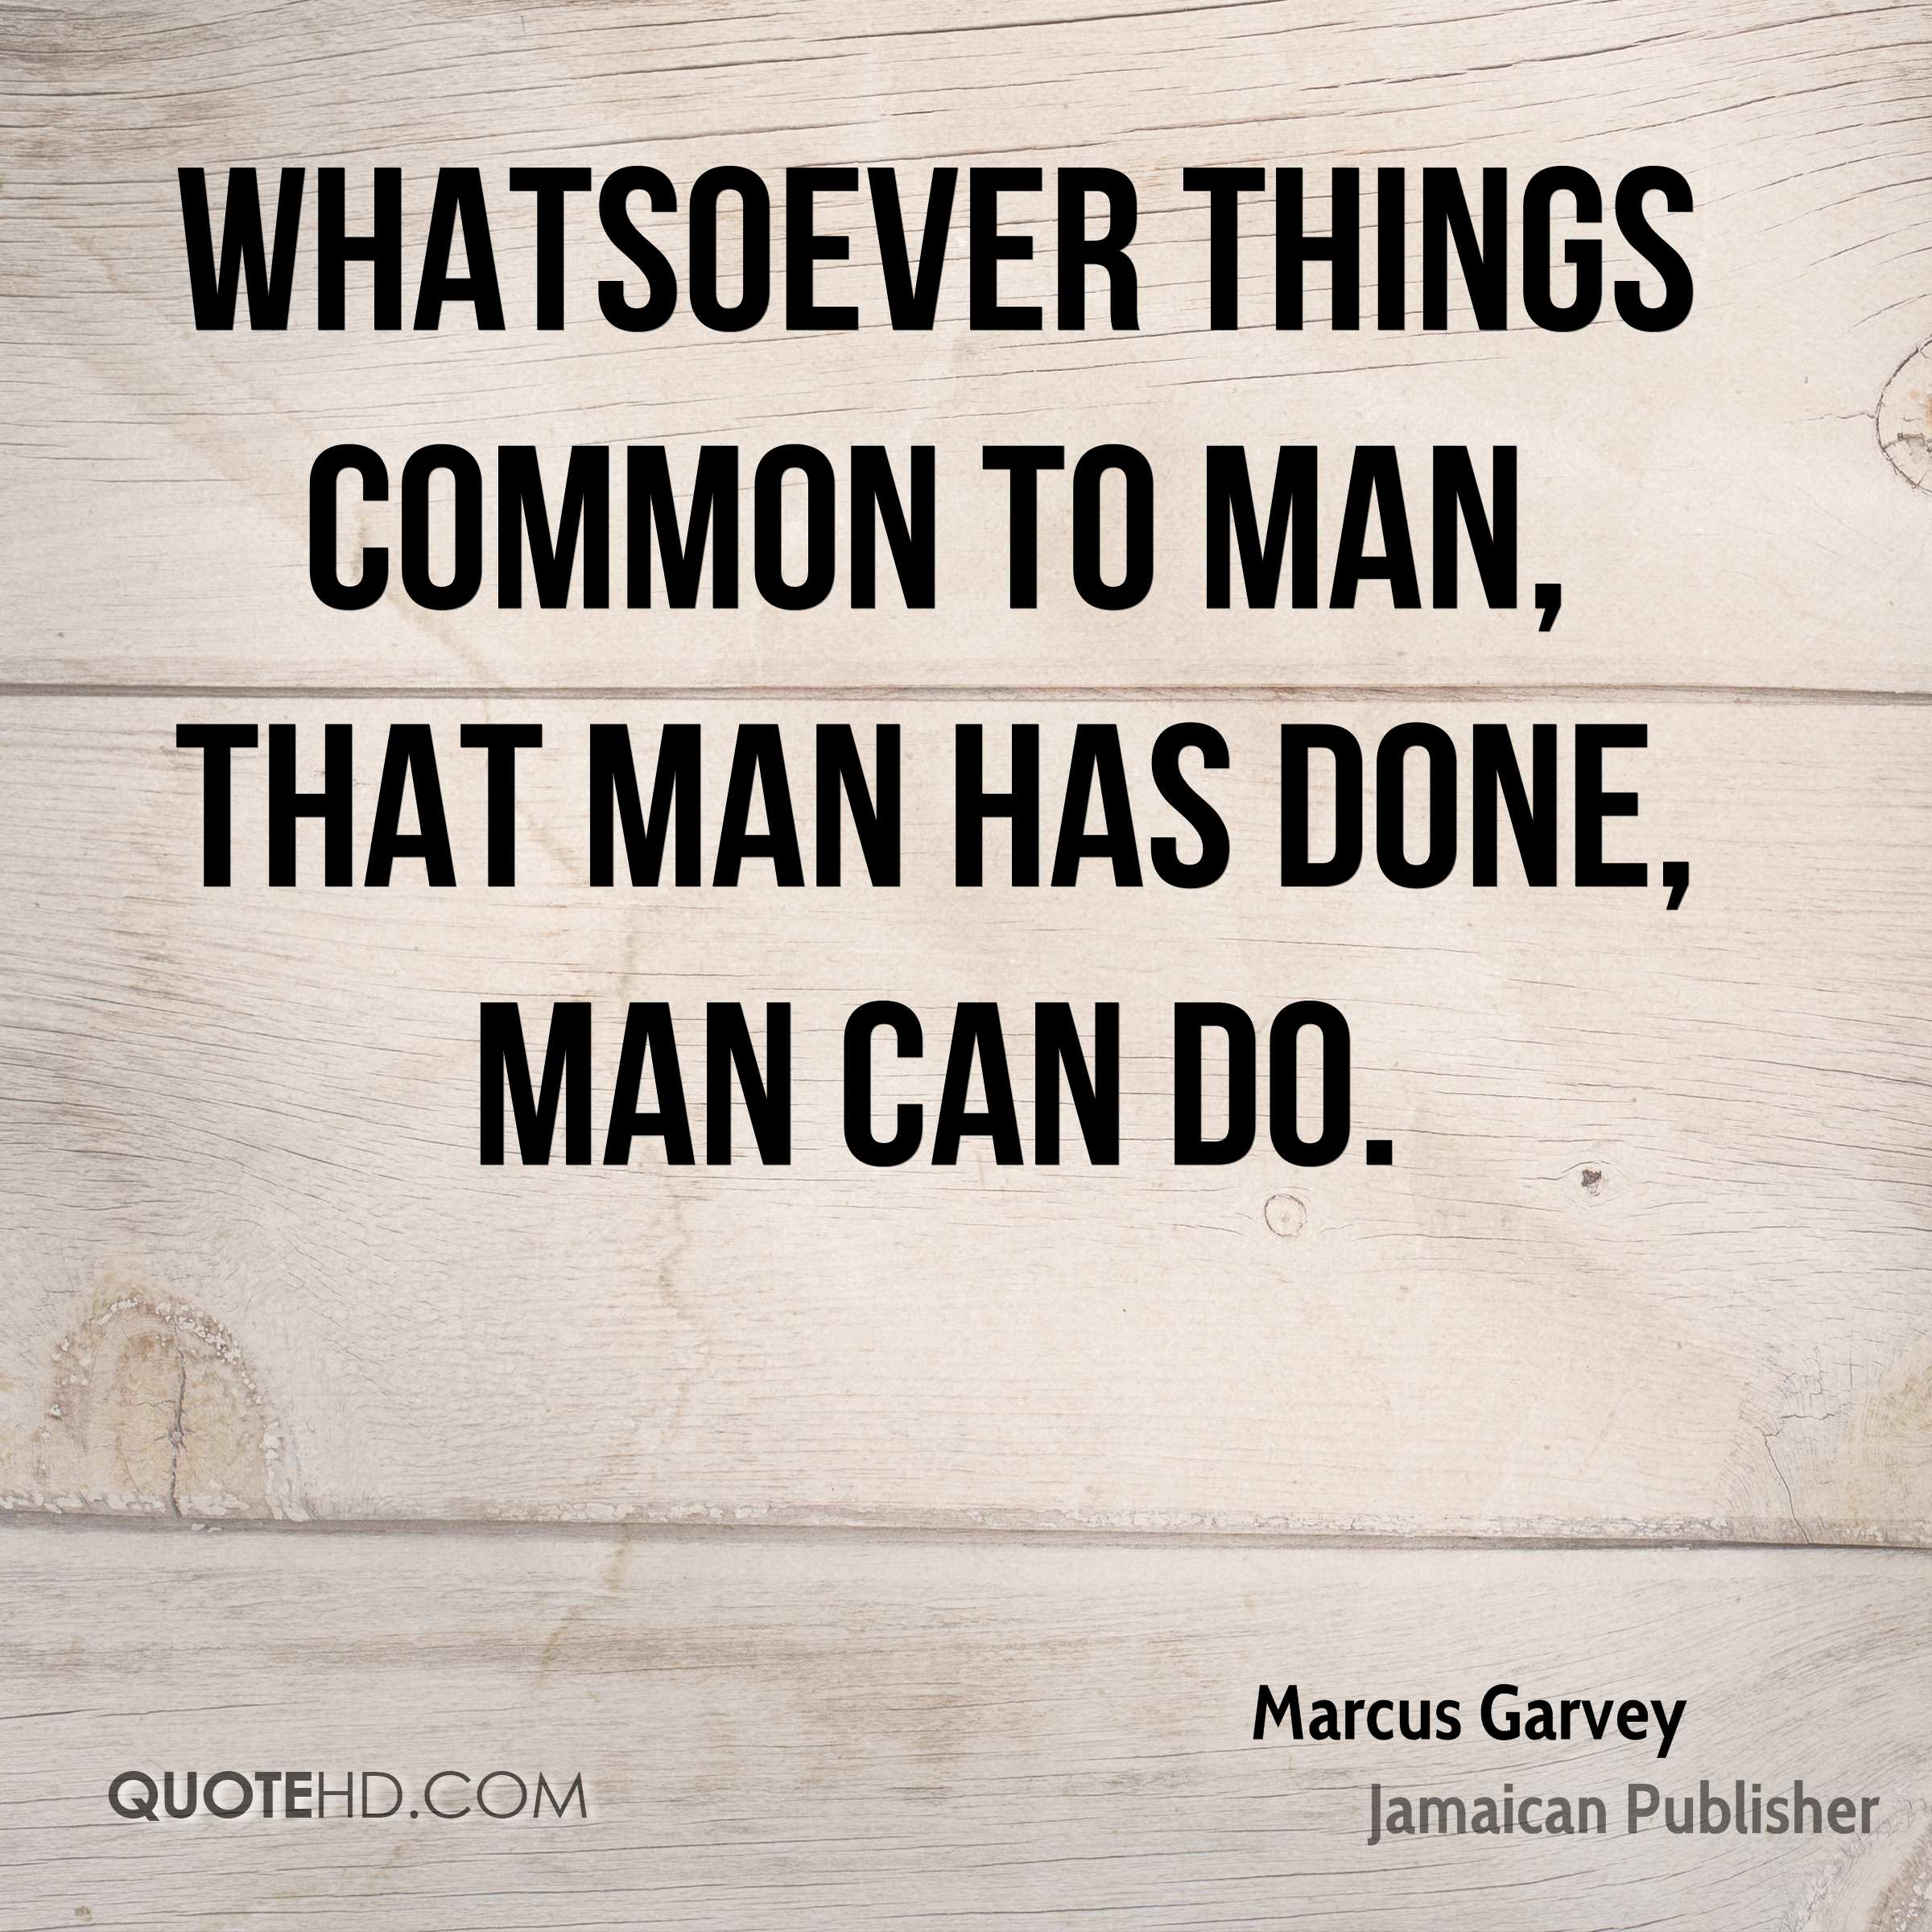 Whatsoever things common to man, that man has done, man can do.